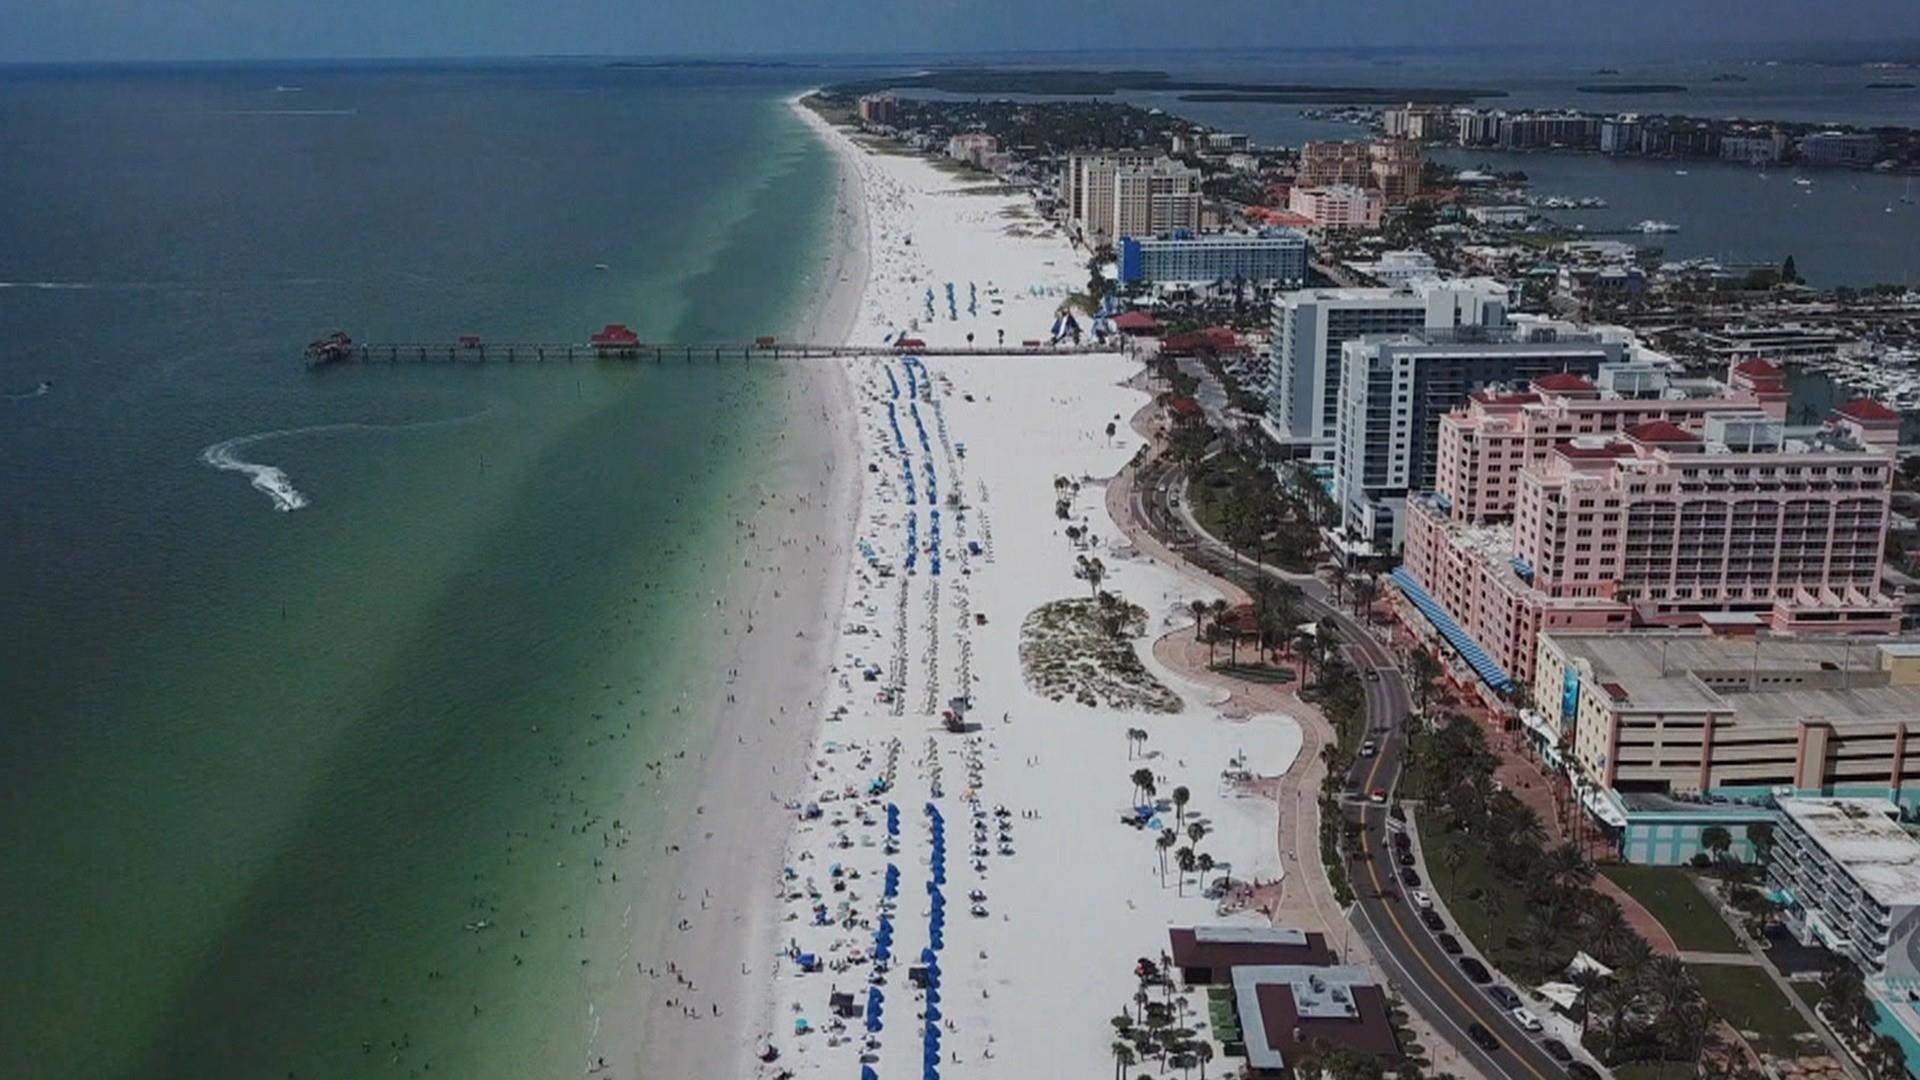 Lightning strikes crowded Florida beach, injuring at least 8